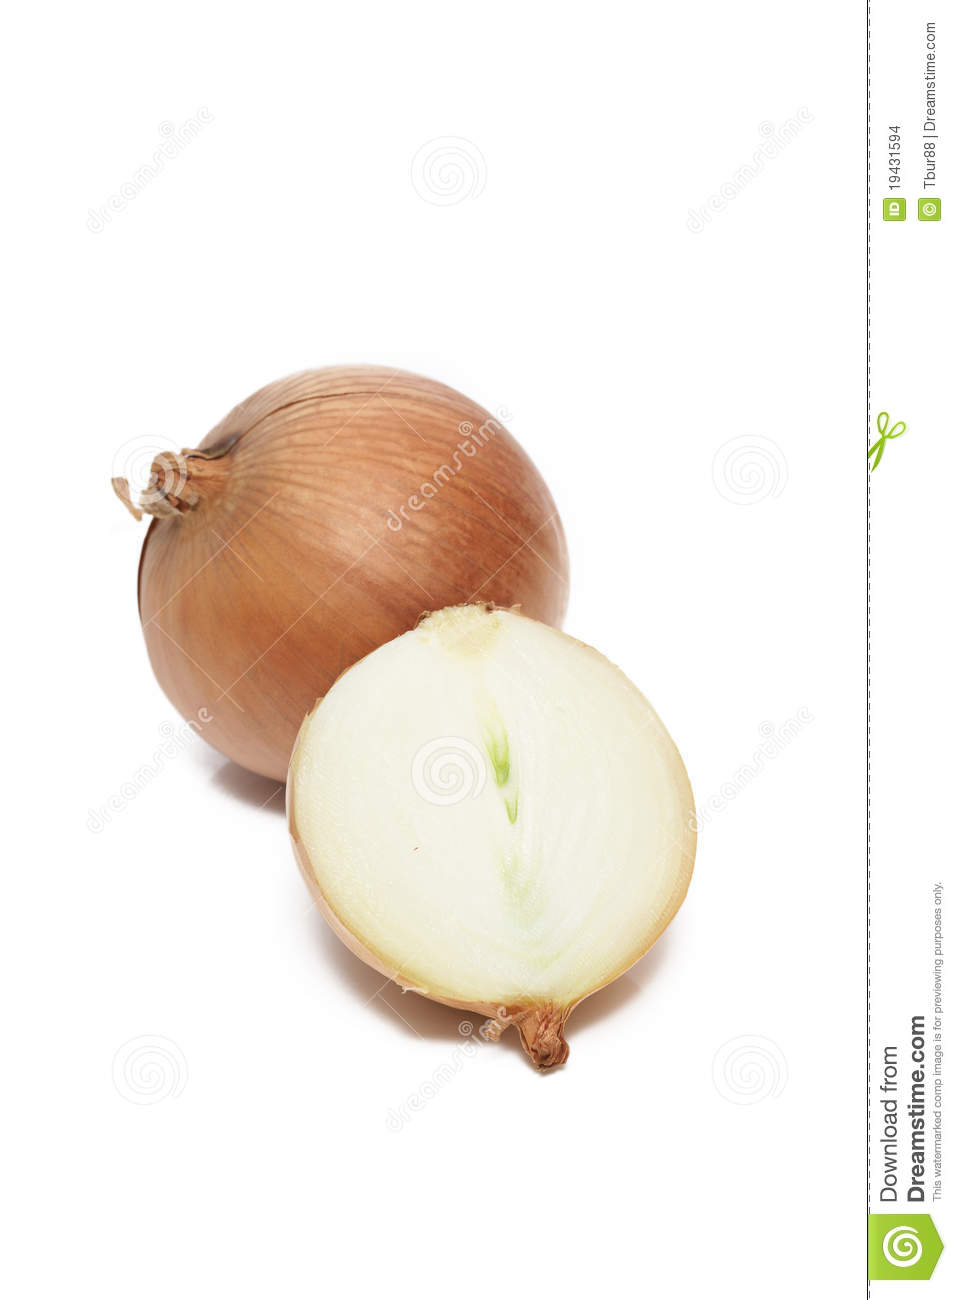 Sliced White Onions Isolated Stock Images - Image: 19431594